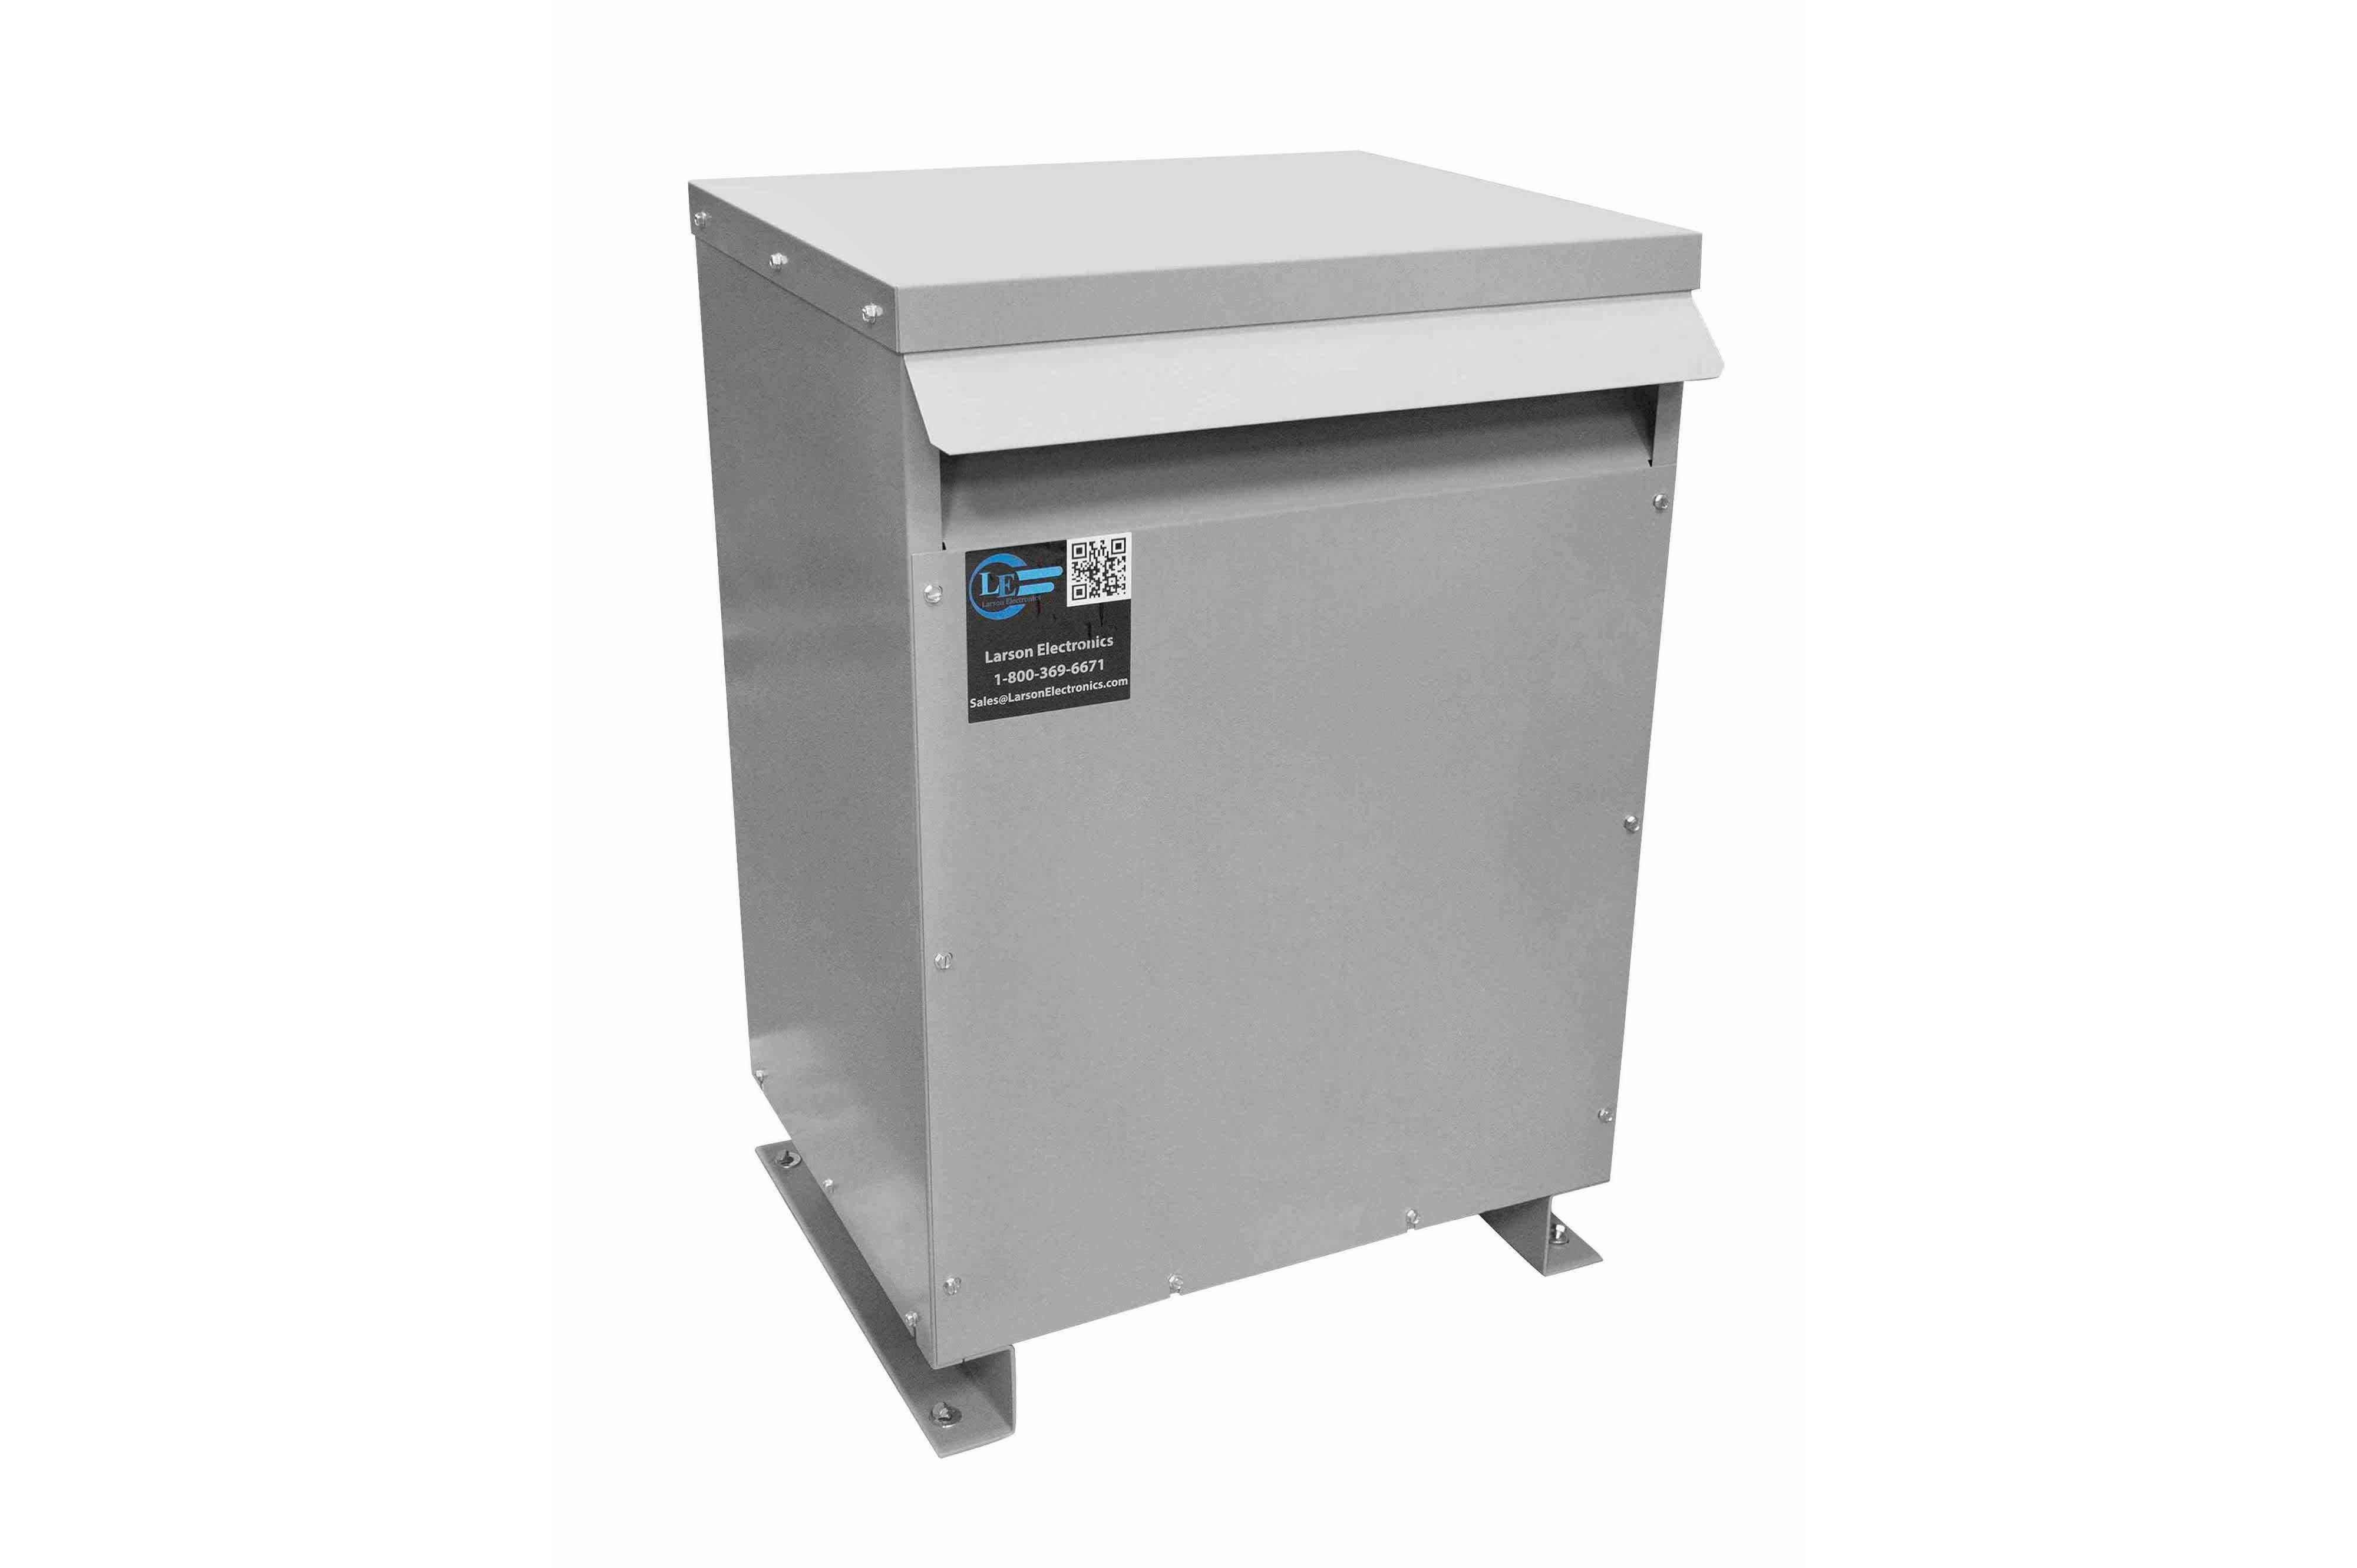 900 kVA 3PH Isolation Transformer, 240V Delta Primary, 400V Delta Secondary, N3R, Ventilated, 60 Hz